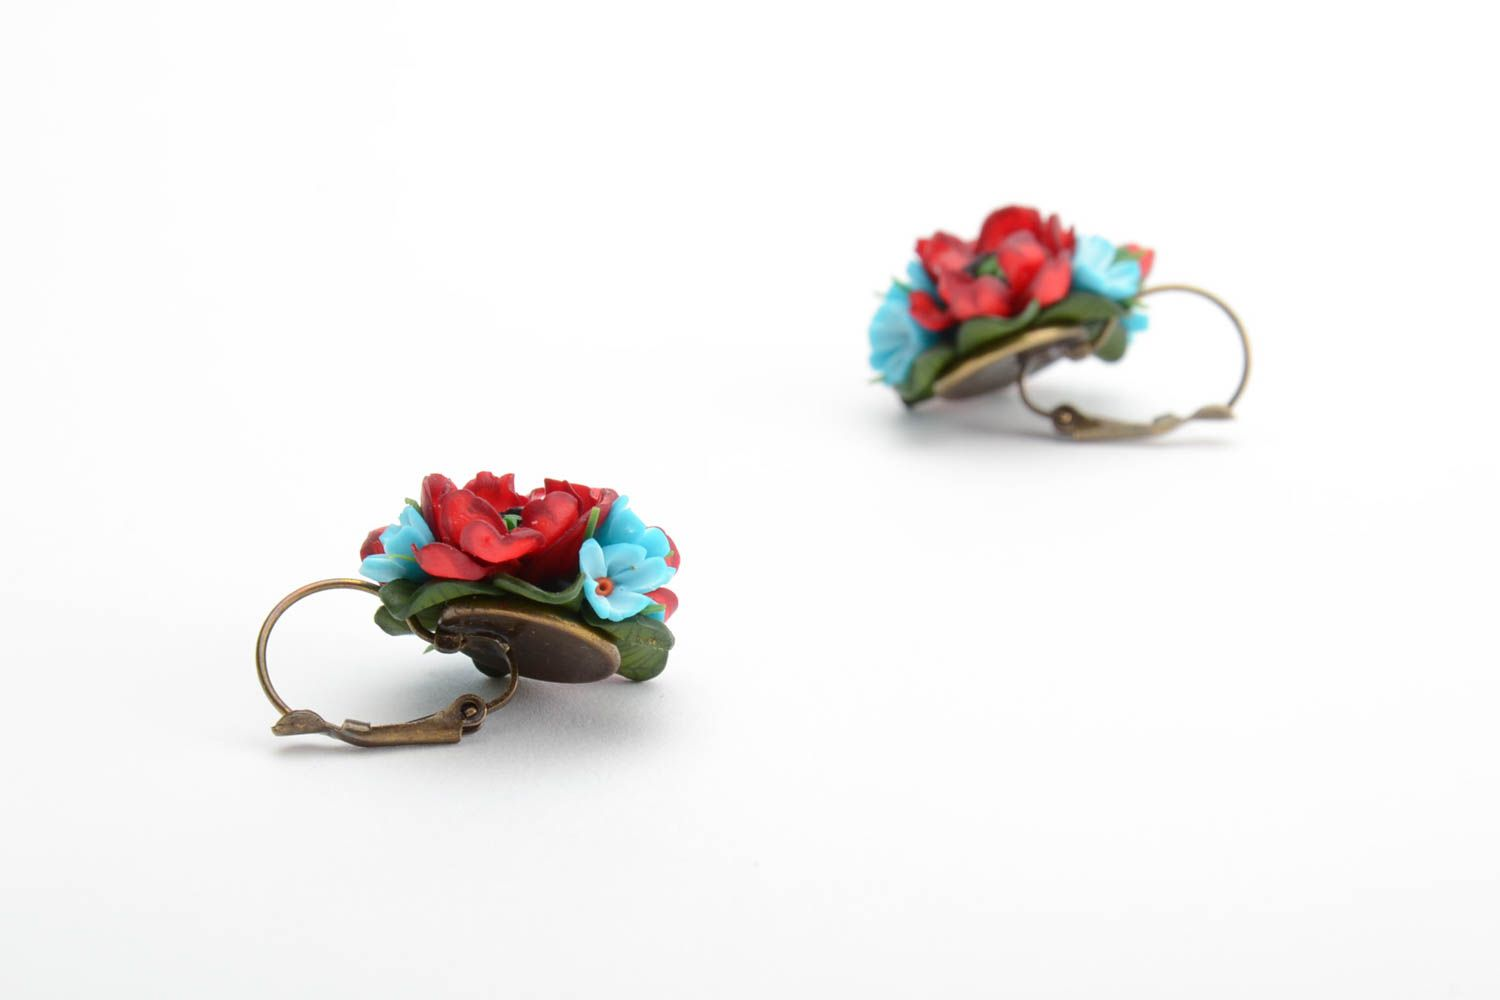 Handmade volume earrings with small red and blue polymer clay flower bouquets photo 5